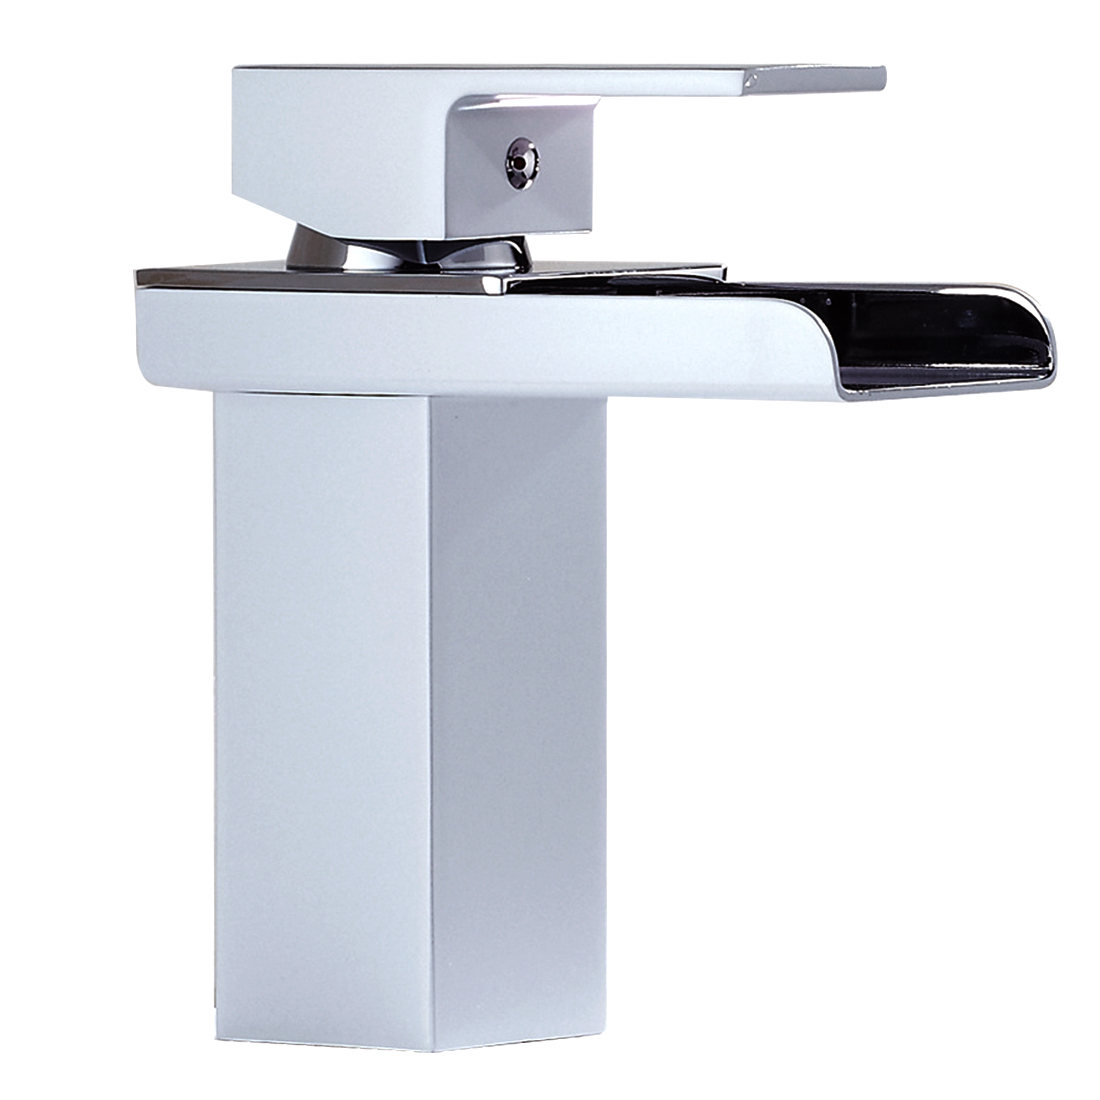 Waterfall Type Bathroom Faucets: 5X(Single Handle Waterfall Bathroom Vanity Sink Faucet